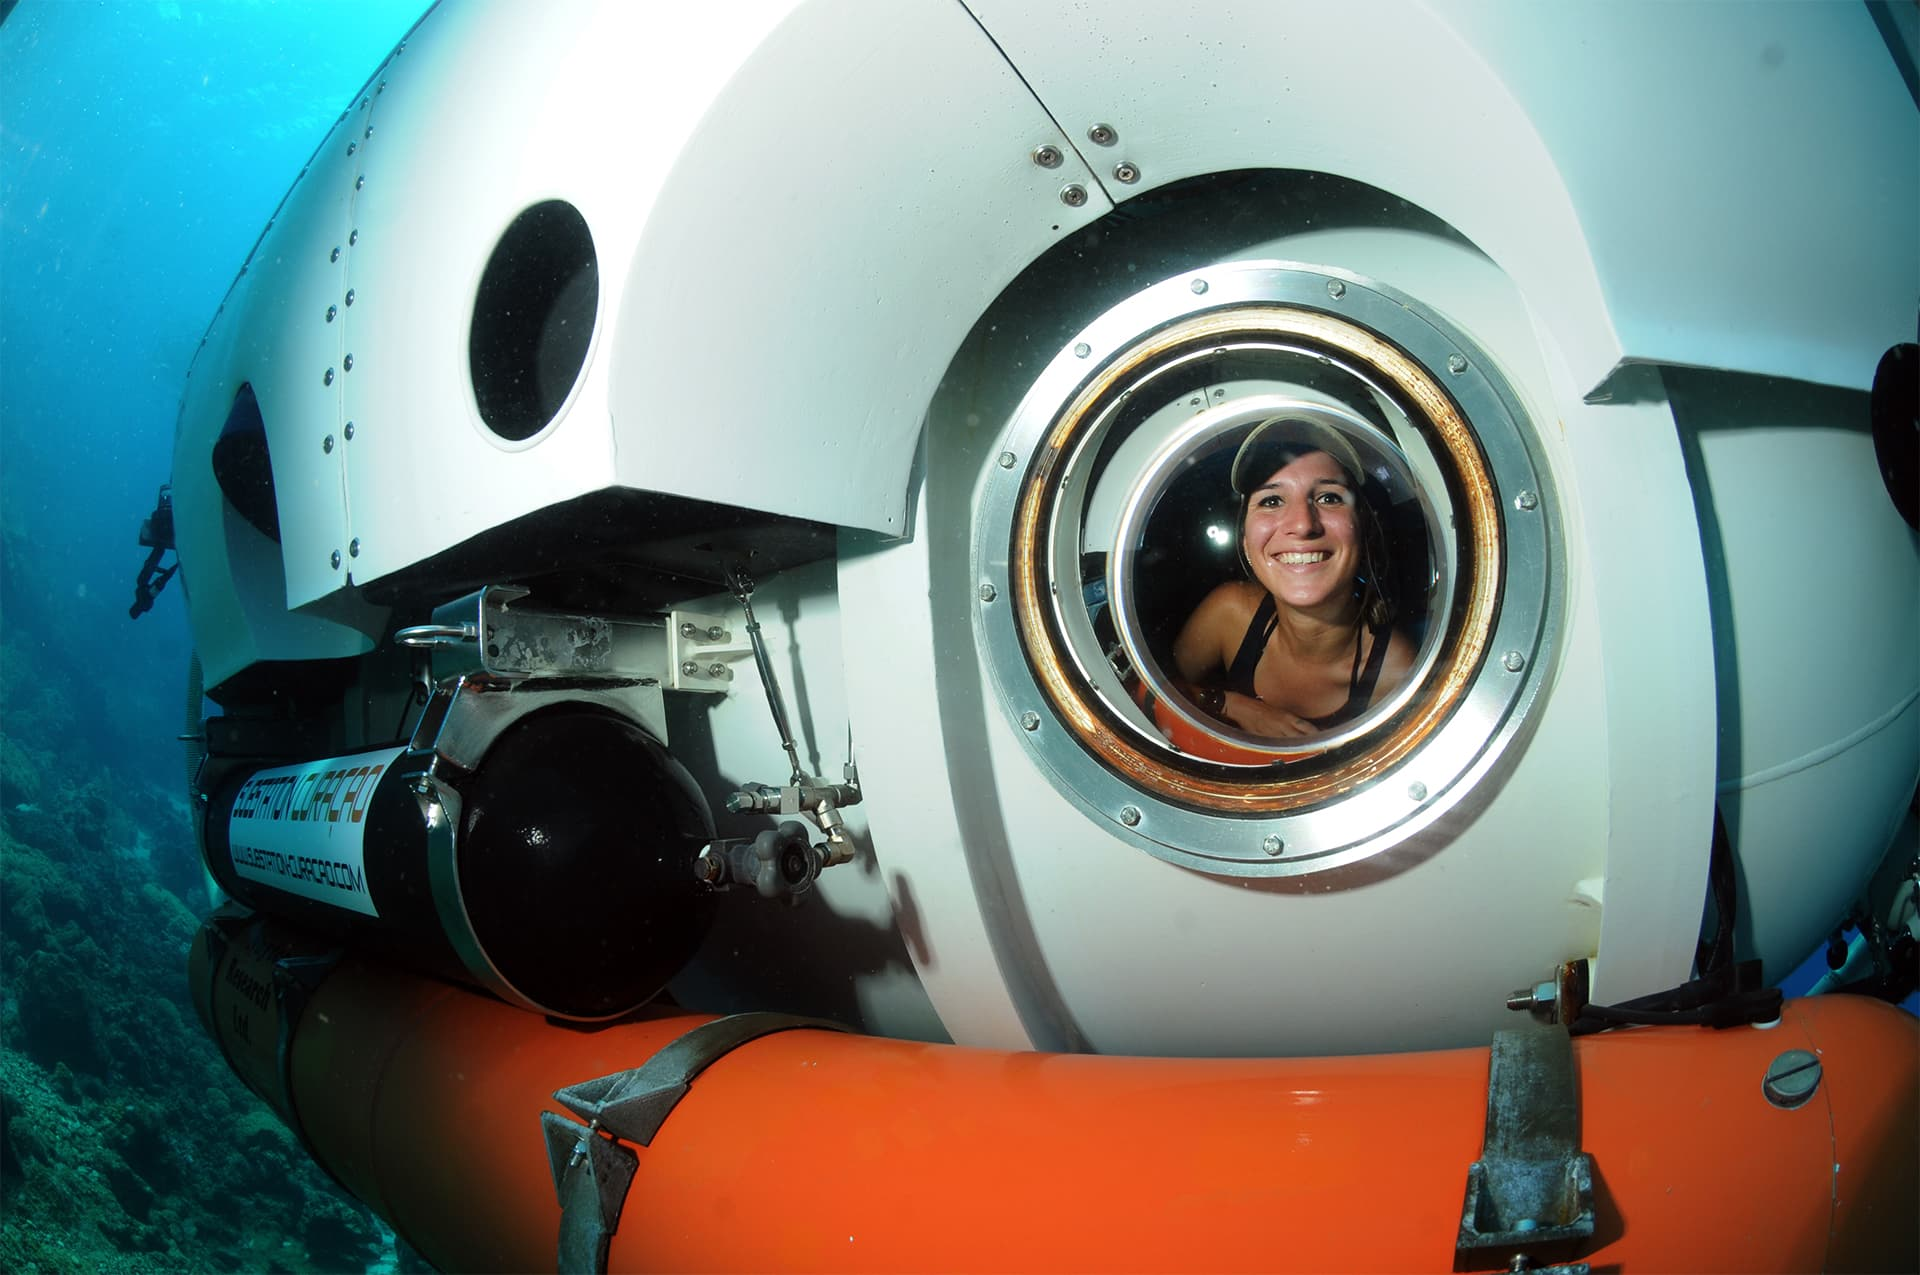 Tourist excitingly looking out from the submarine window straight into the camera while enjoying the sea life of Curaçao